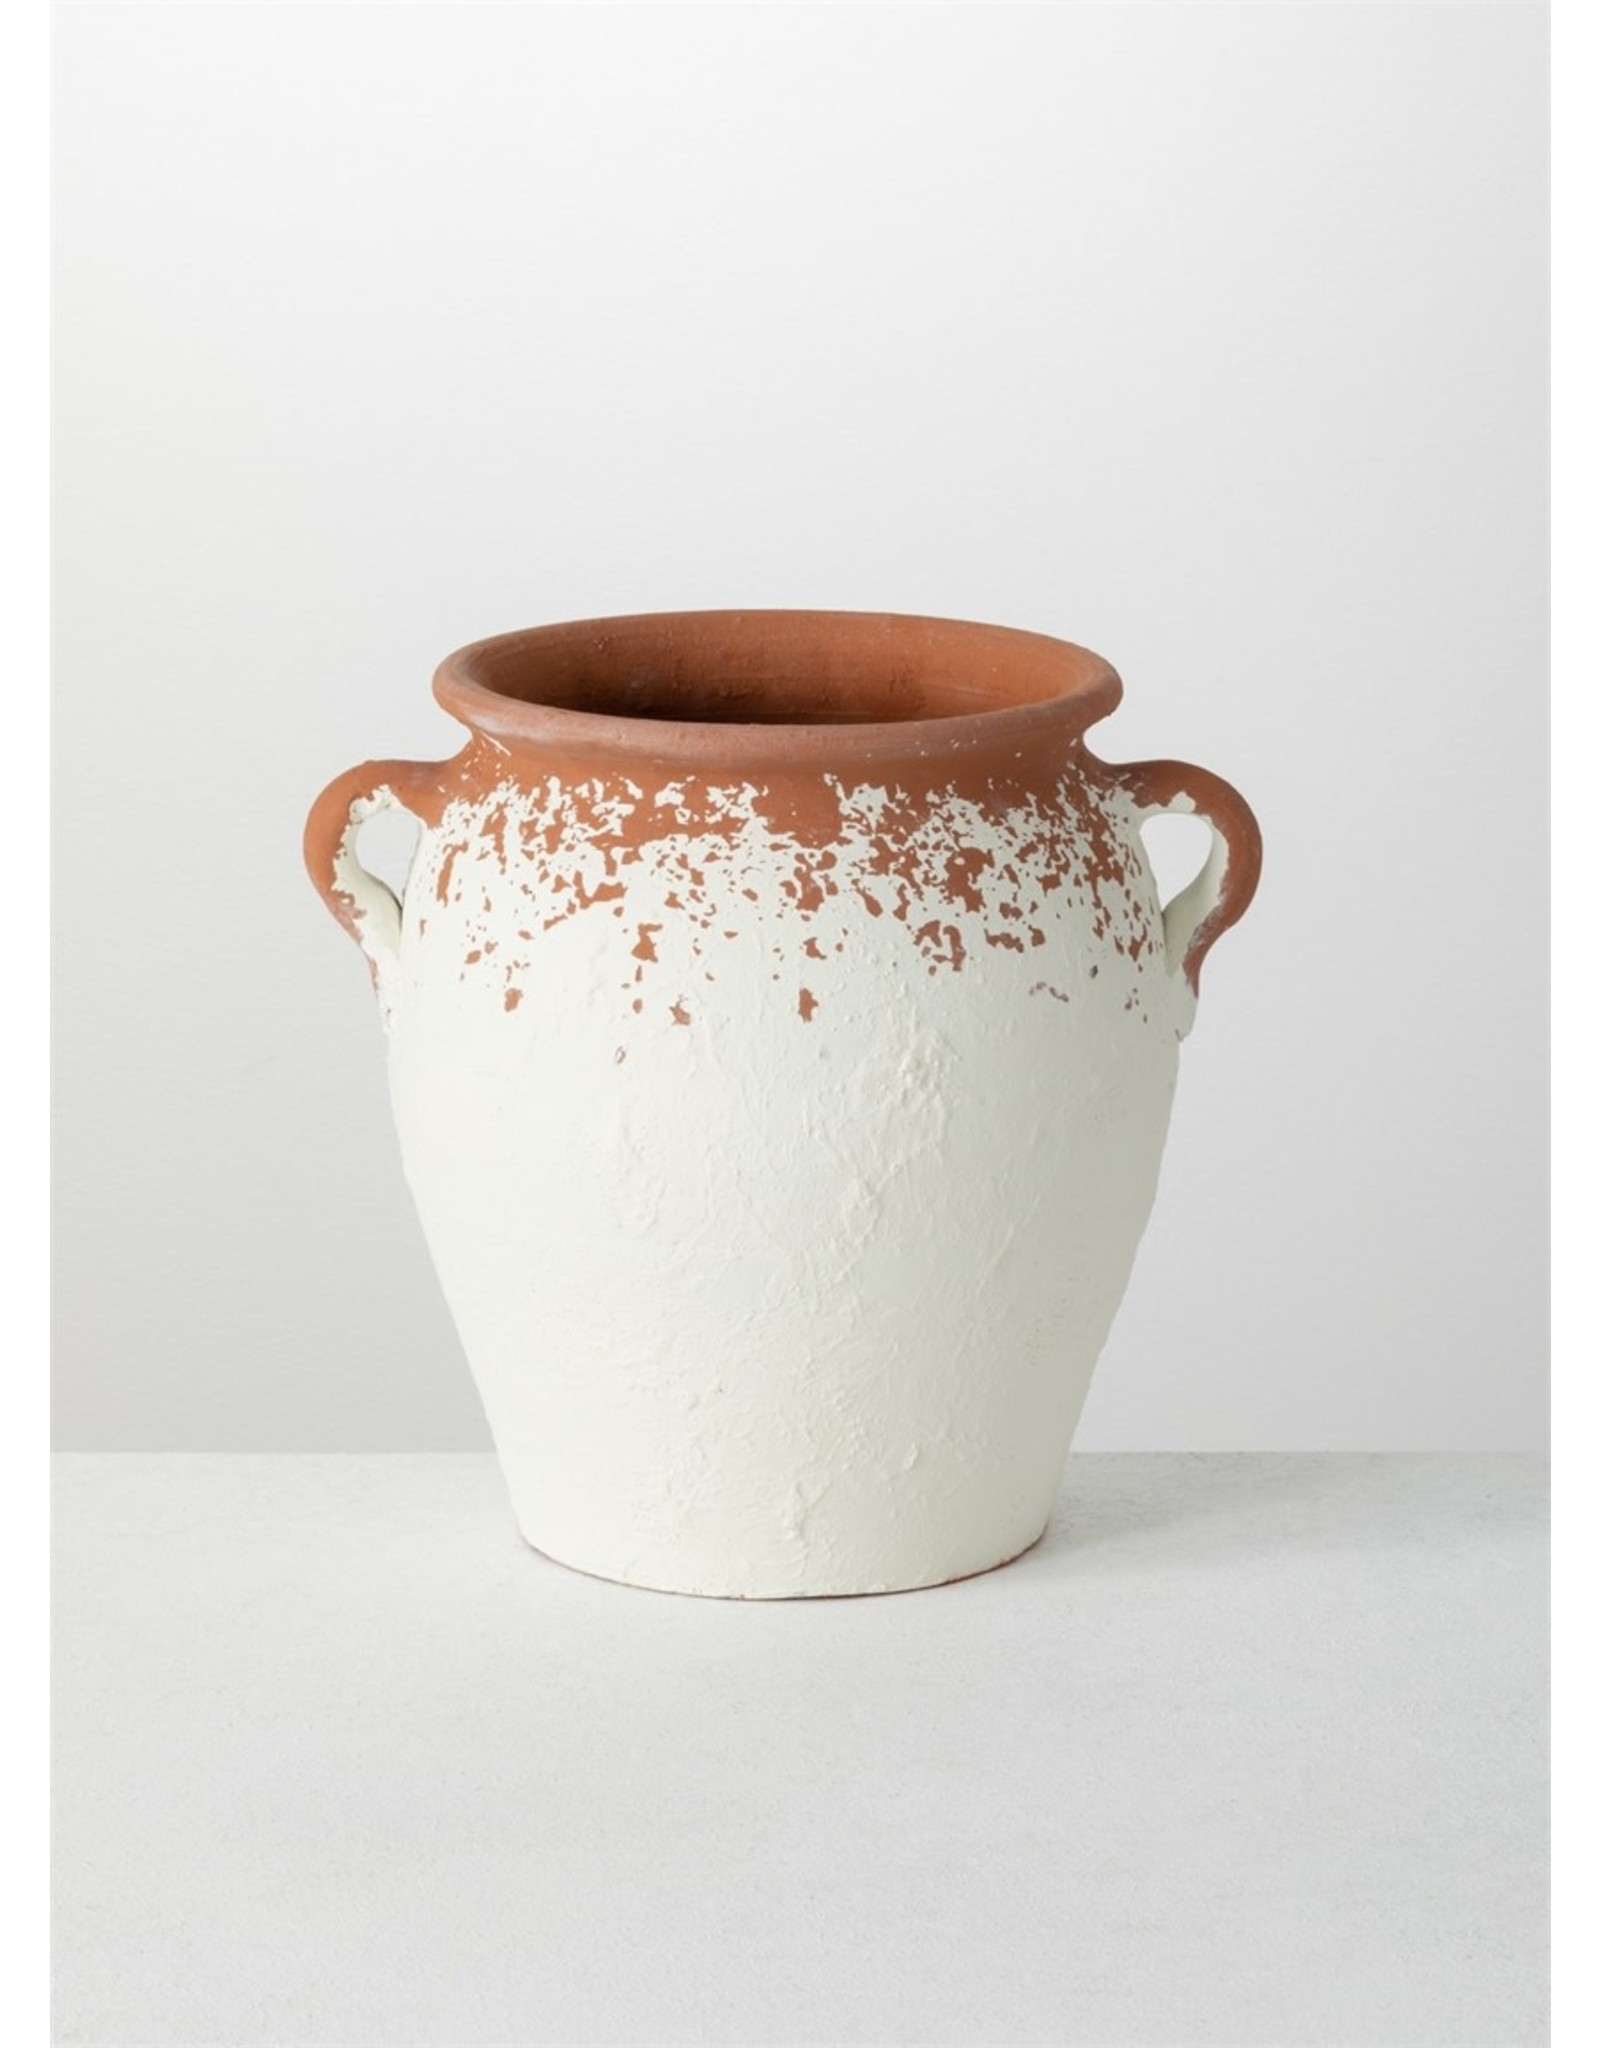 Sullivans WHITE SPECKLED POT